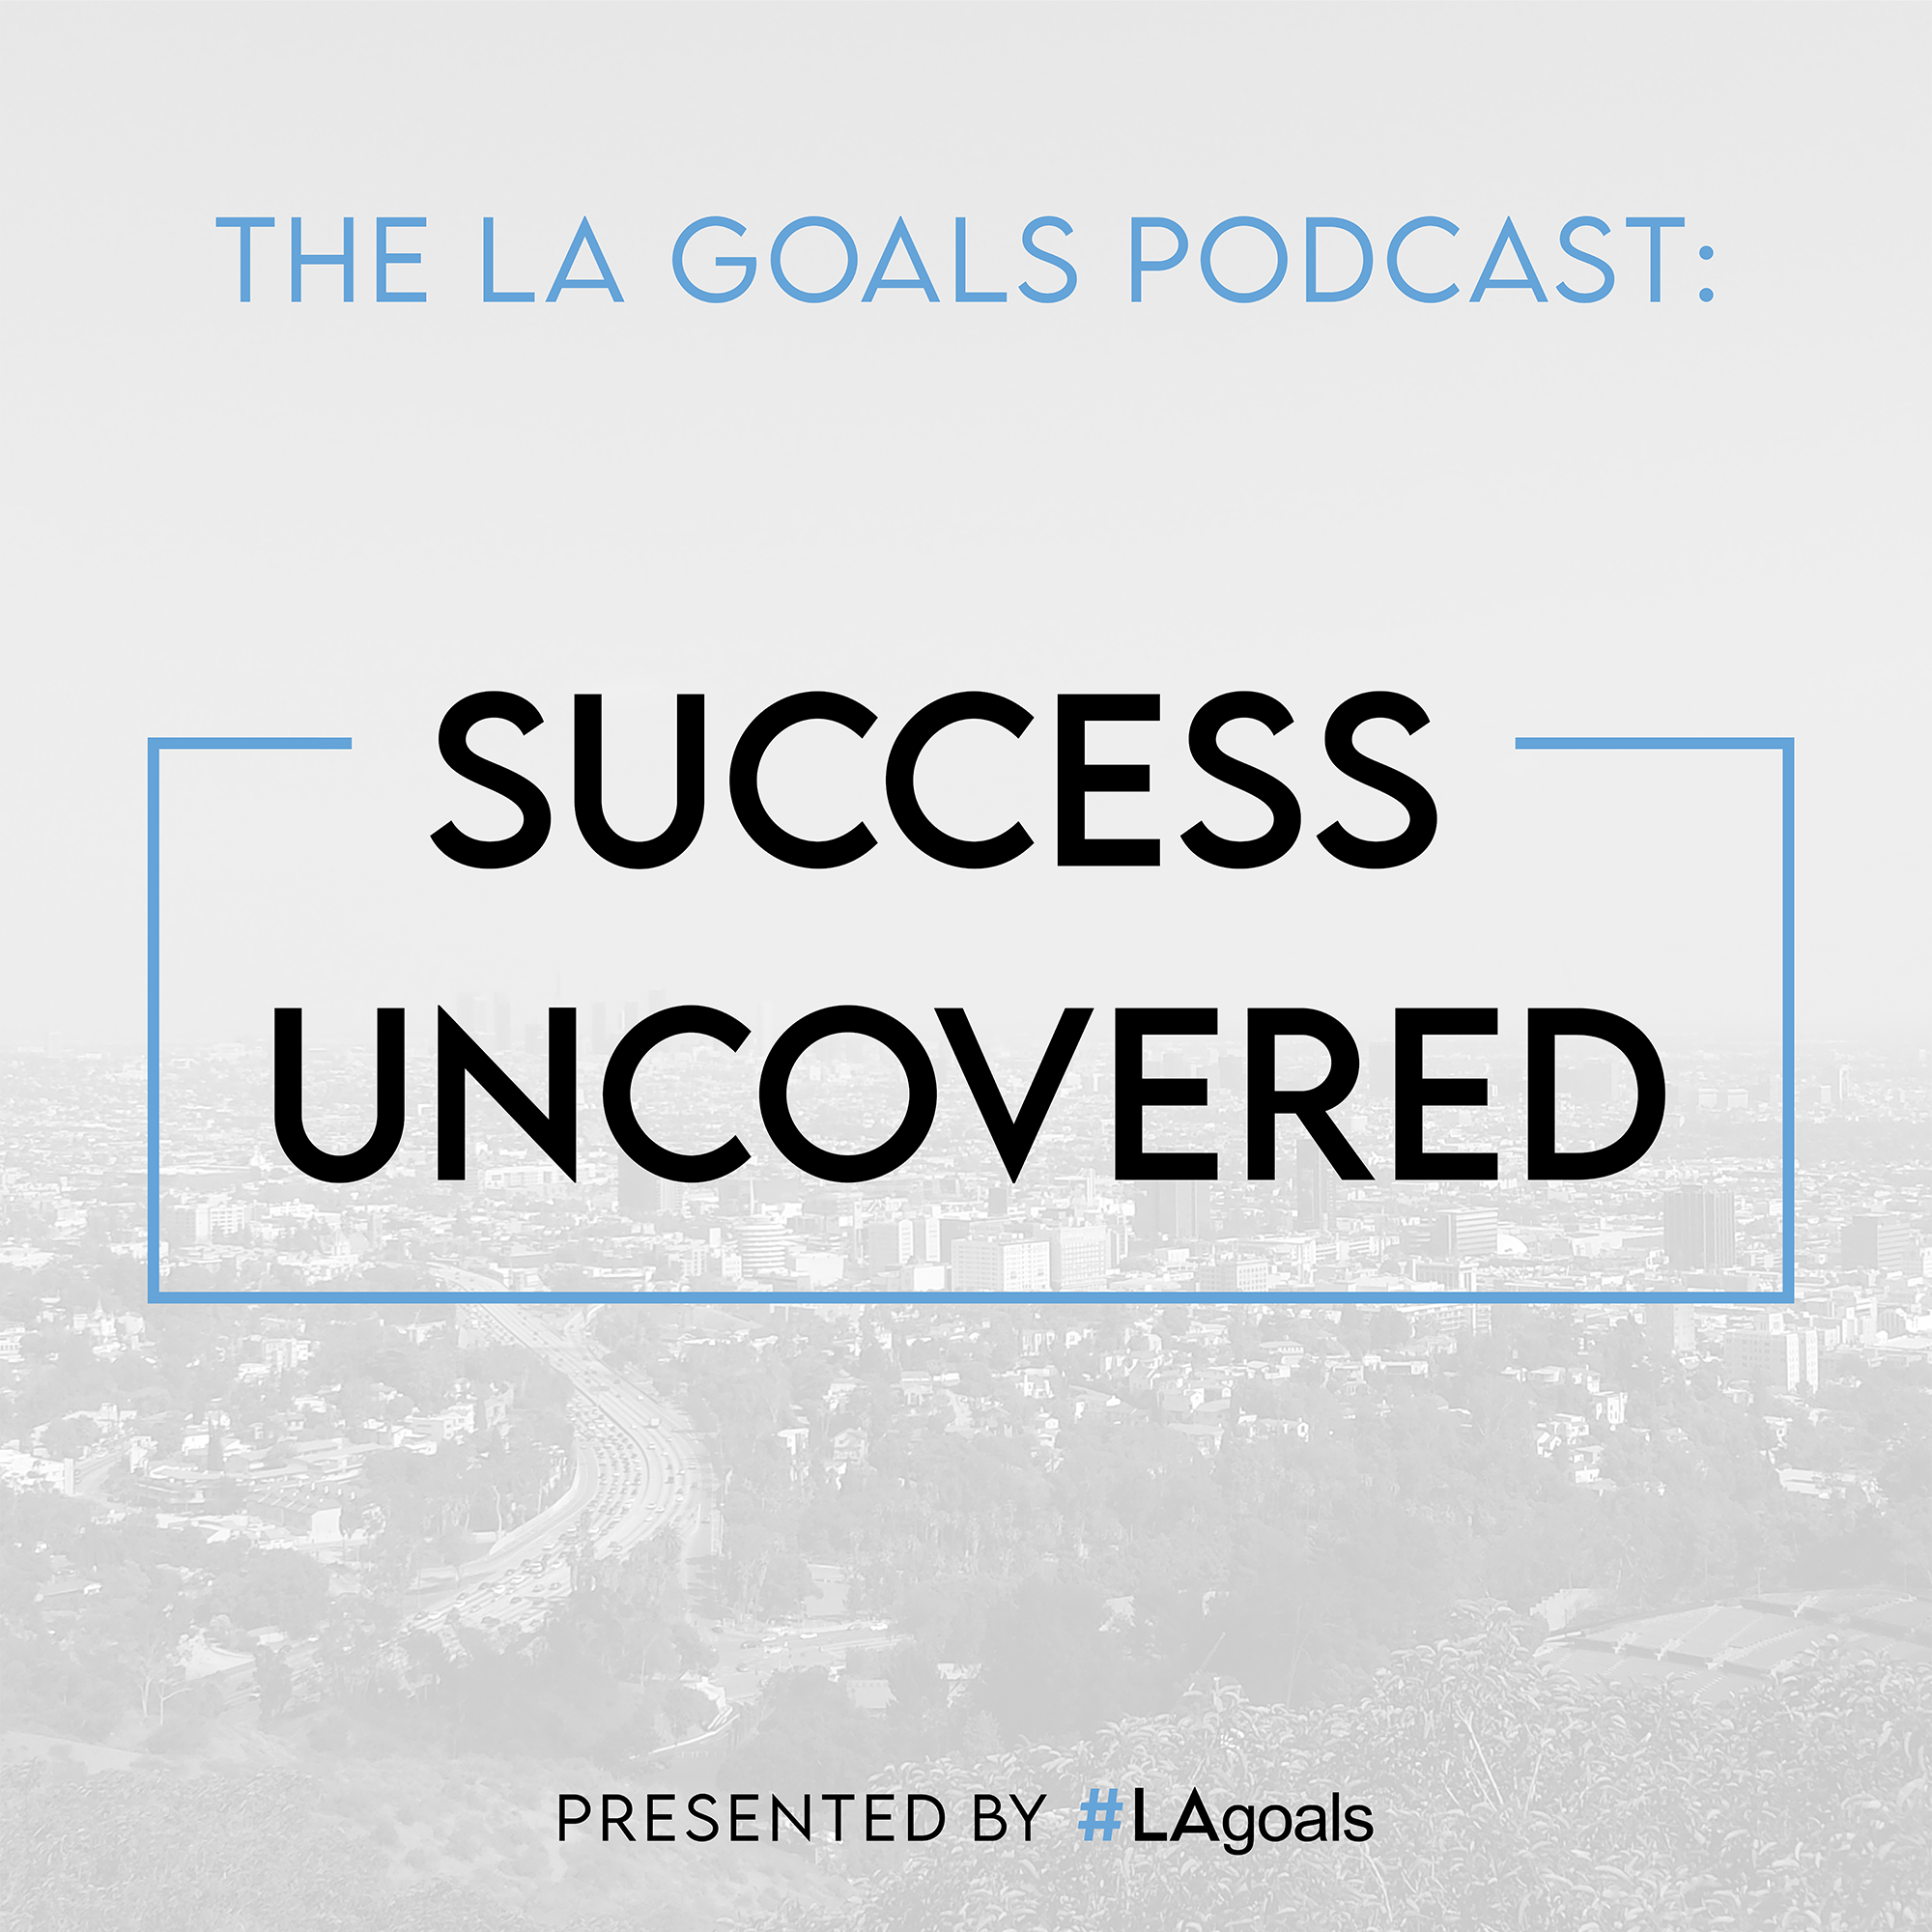 LA Goals Podcast Graphic